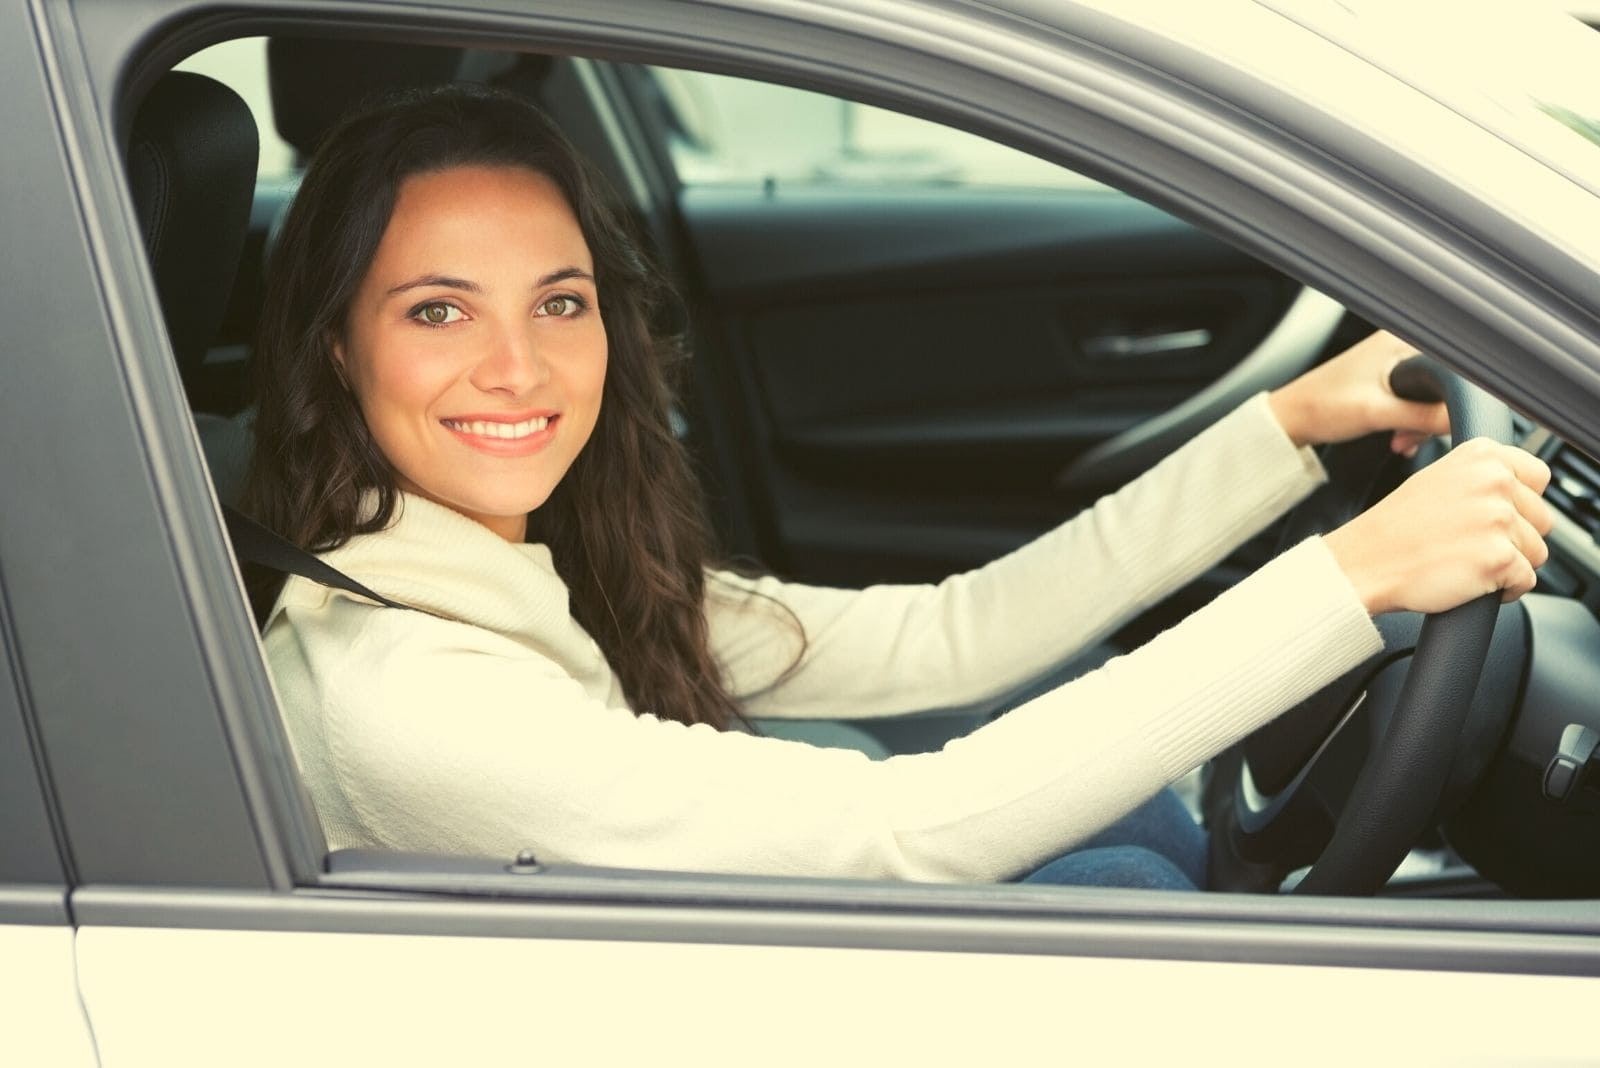 pretty woman driving and smiling to the camera wearing long sleeved shirt